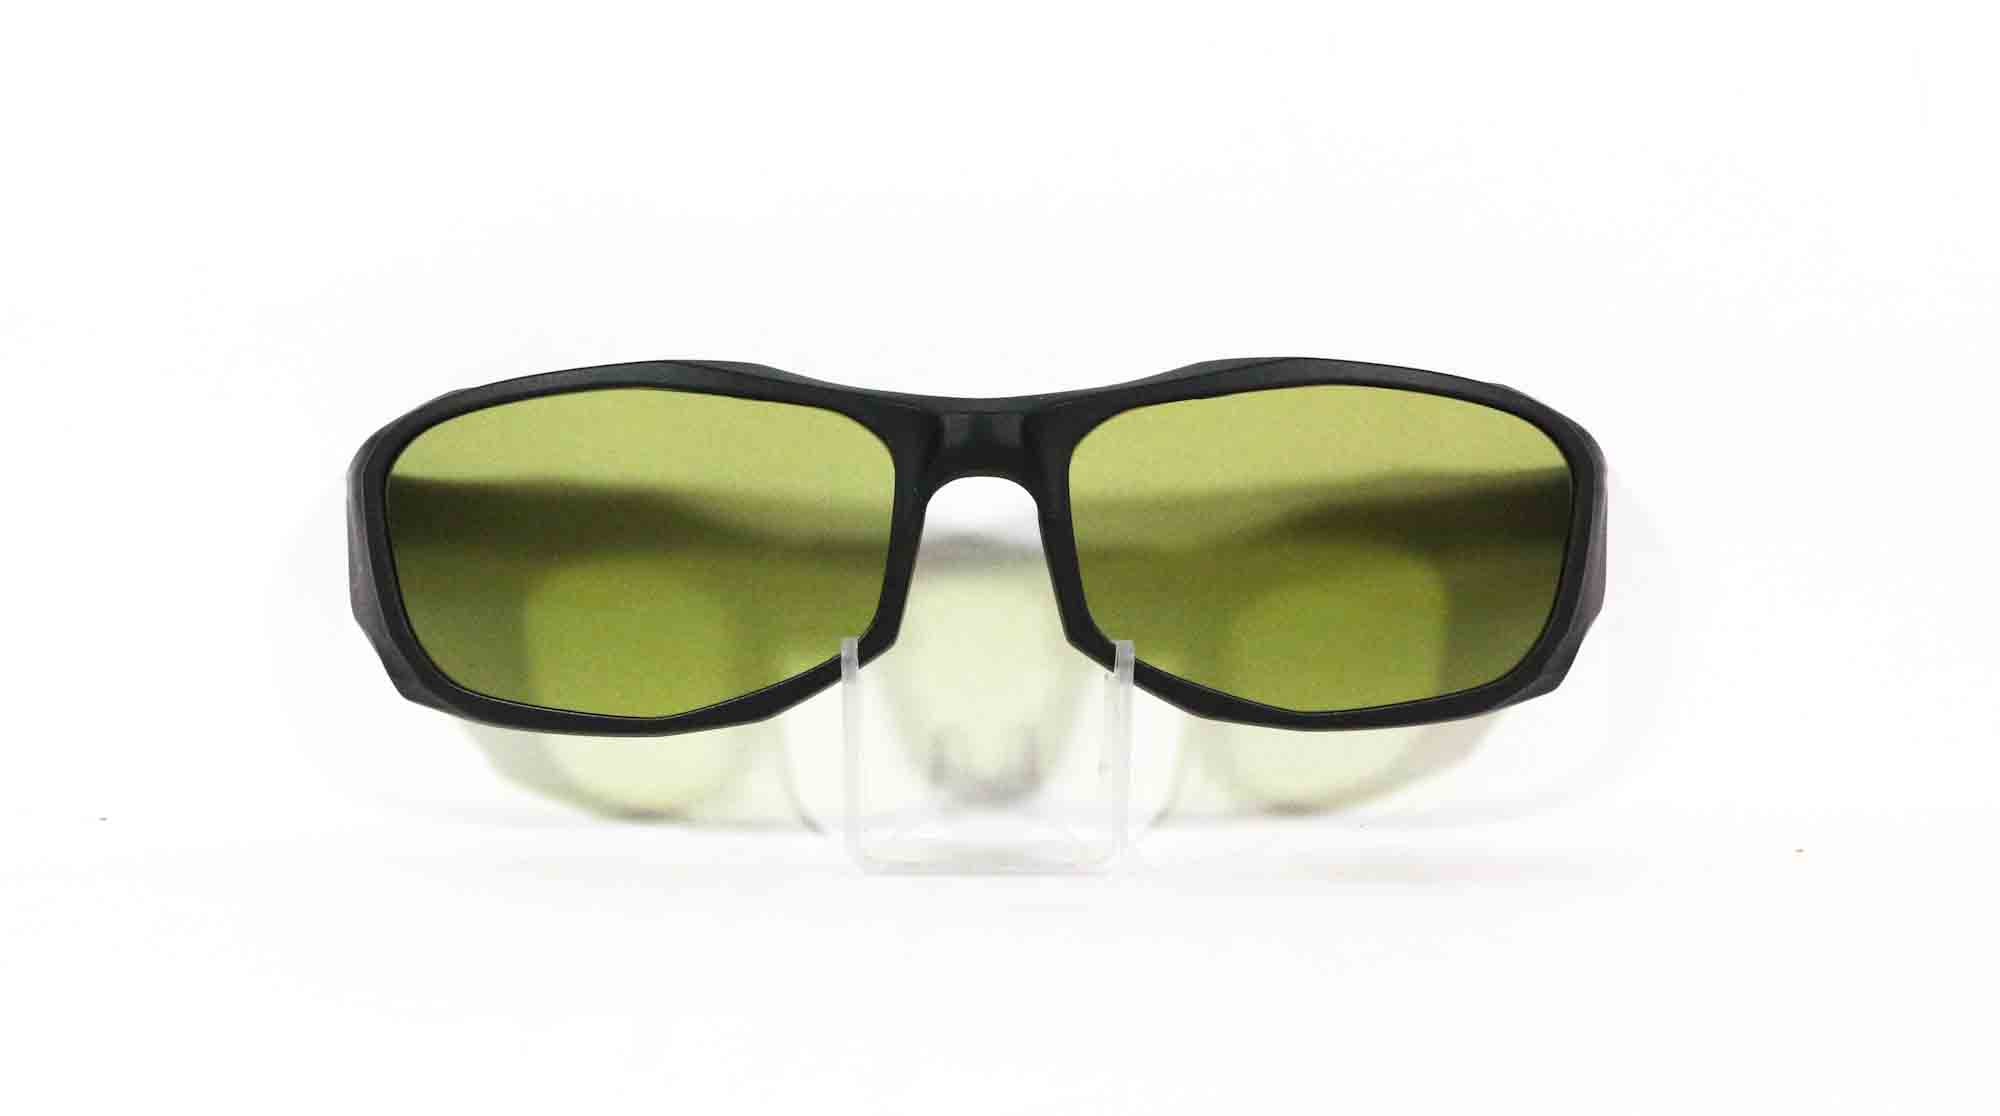 Zeque Polarised Fishing Sunglasses Baron Jacket F-1651 Ease Green / Blk (8454)